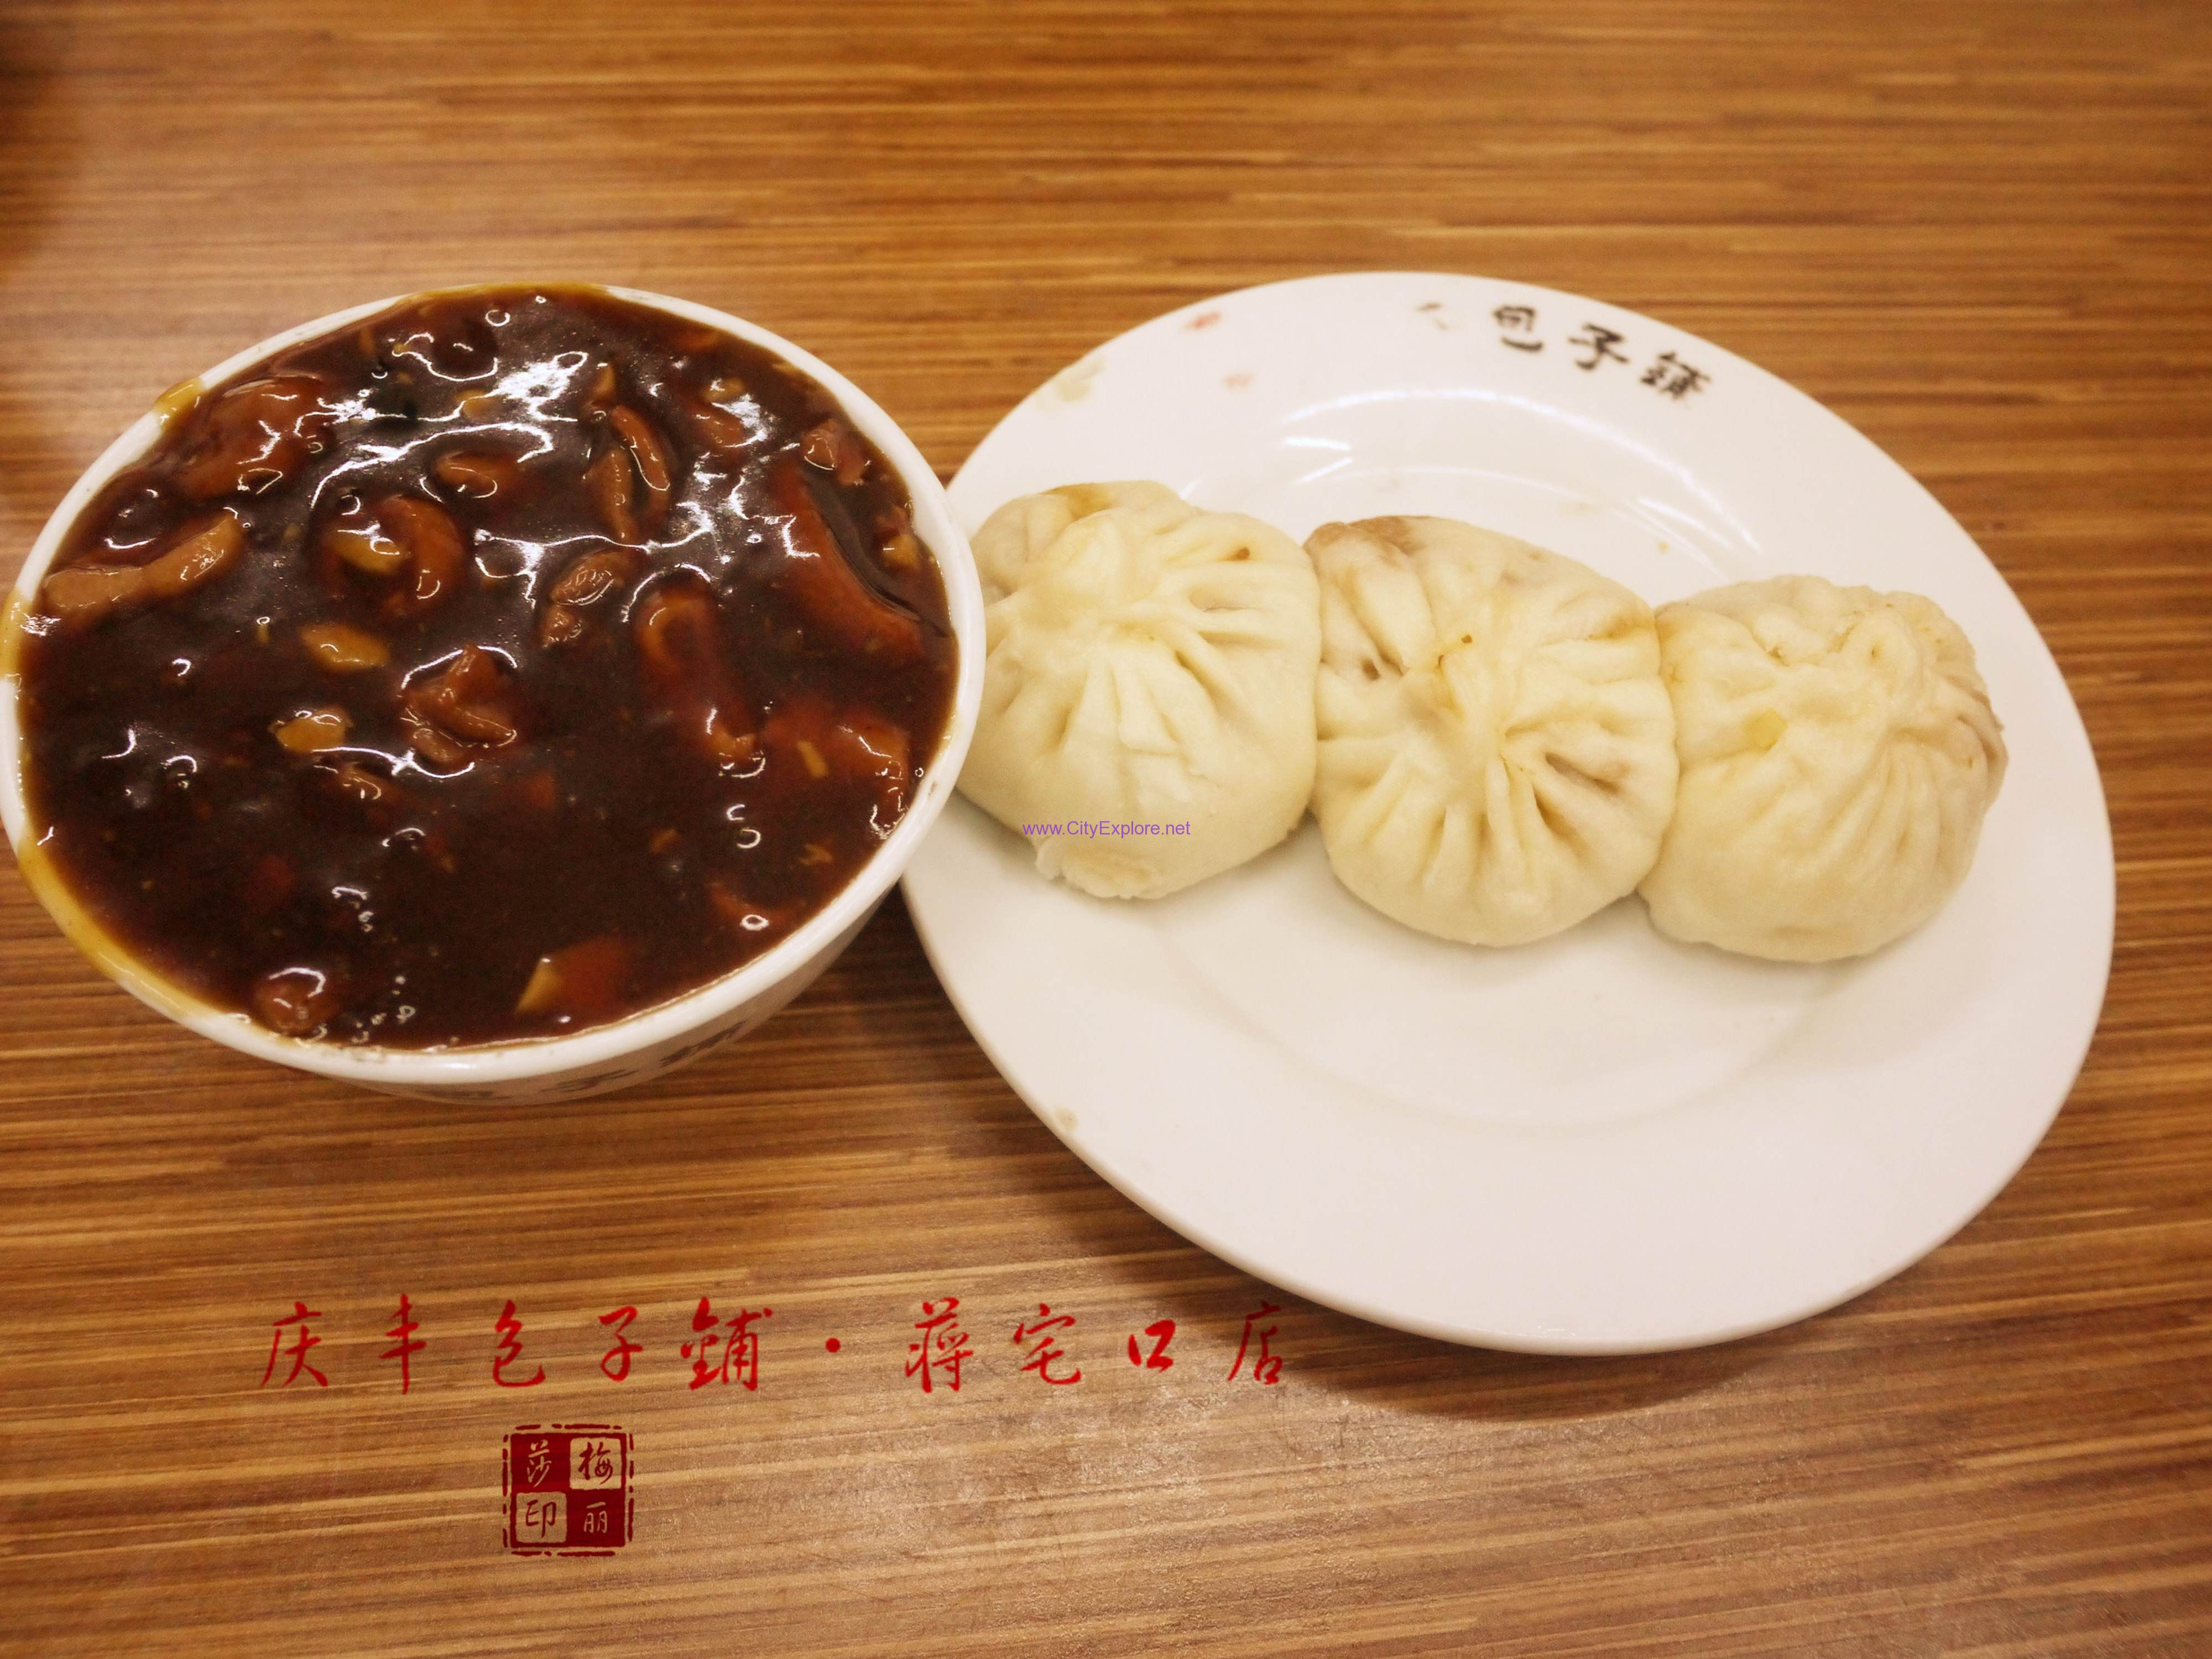 Fried liver, Bei Jing